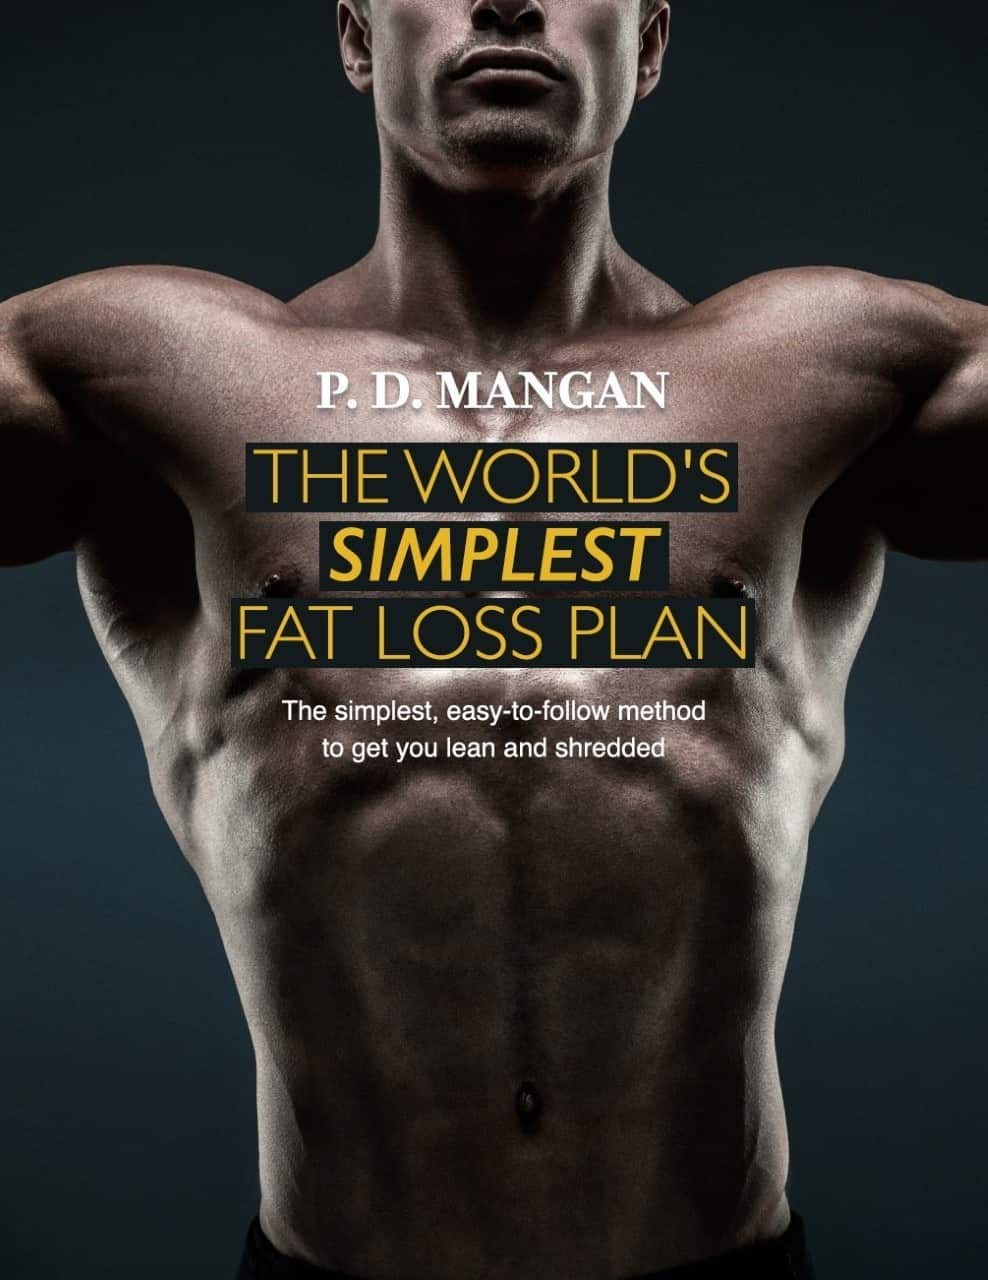 The World's Simplest Fat Loss Plan